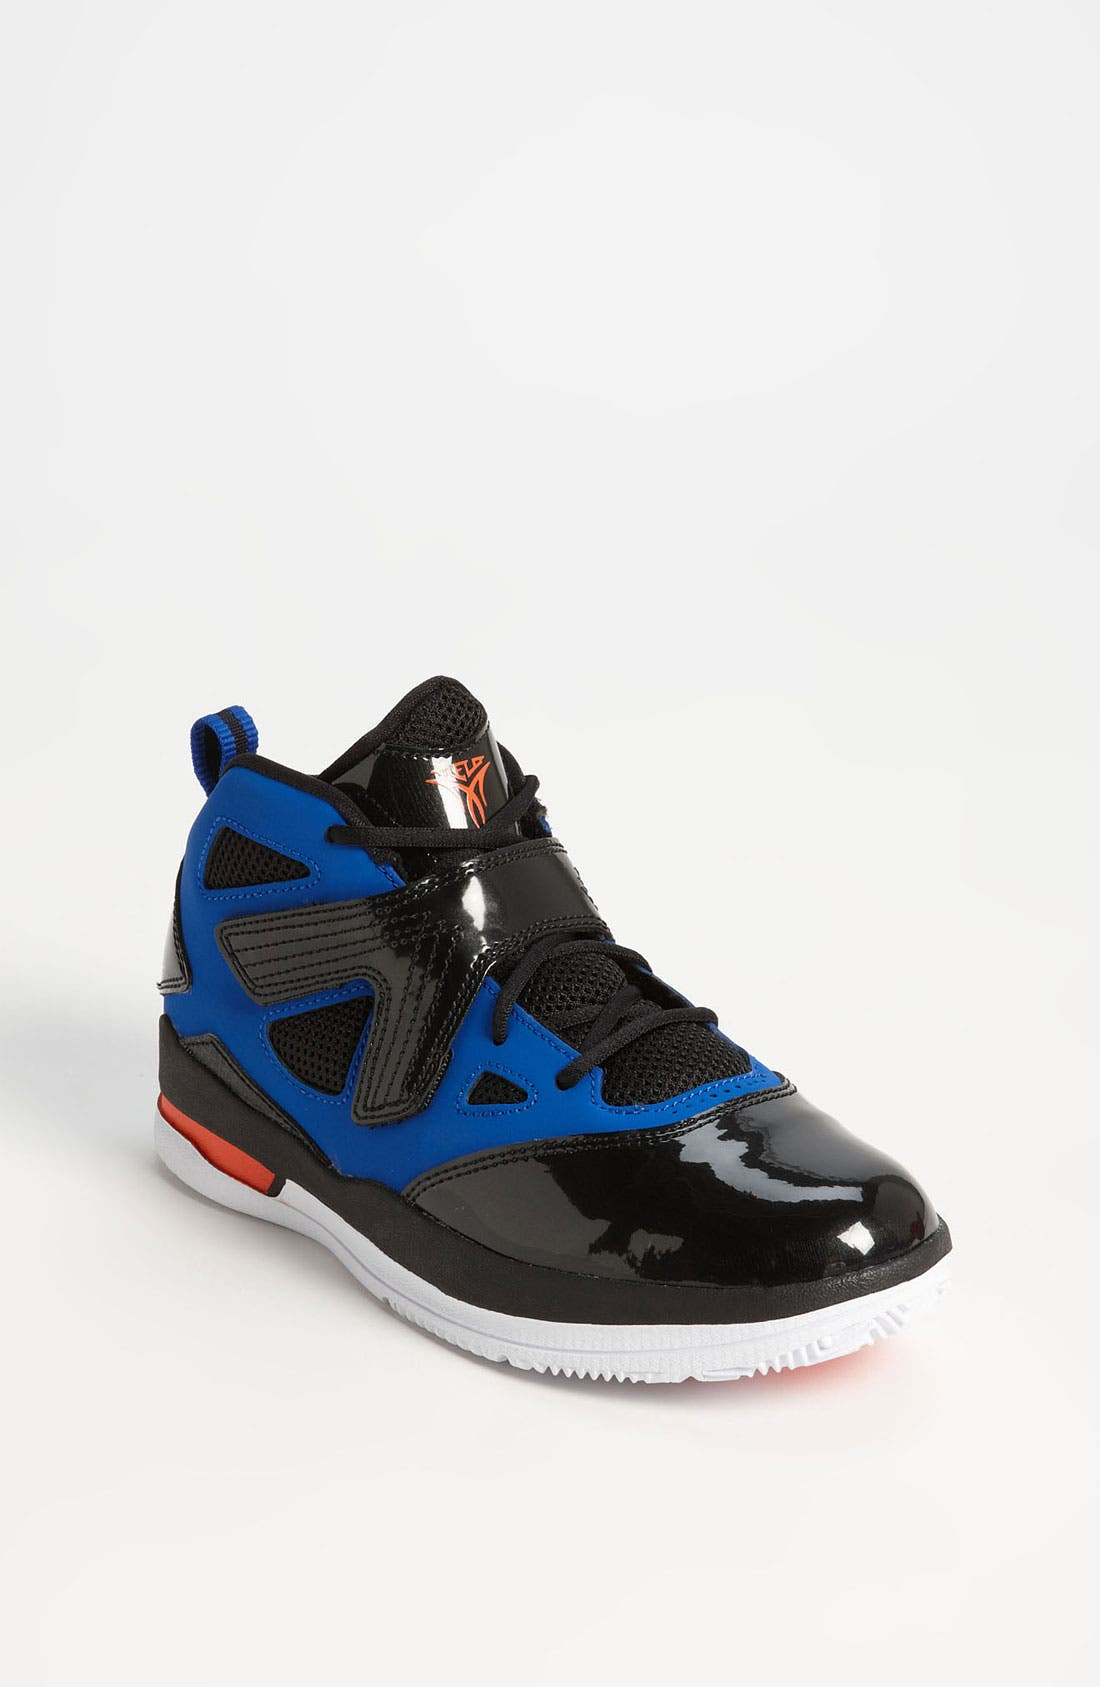 Alternate Image 1 Selected - Nike 'Jordan Melo M9' Basketball Shoe (Toddler & Little Kid)